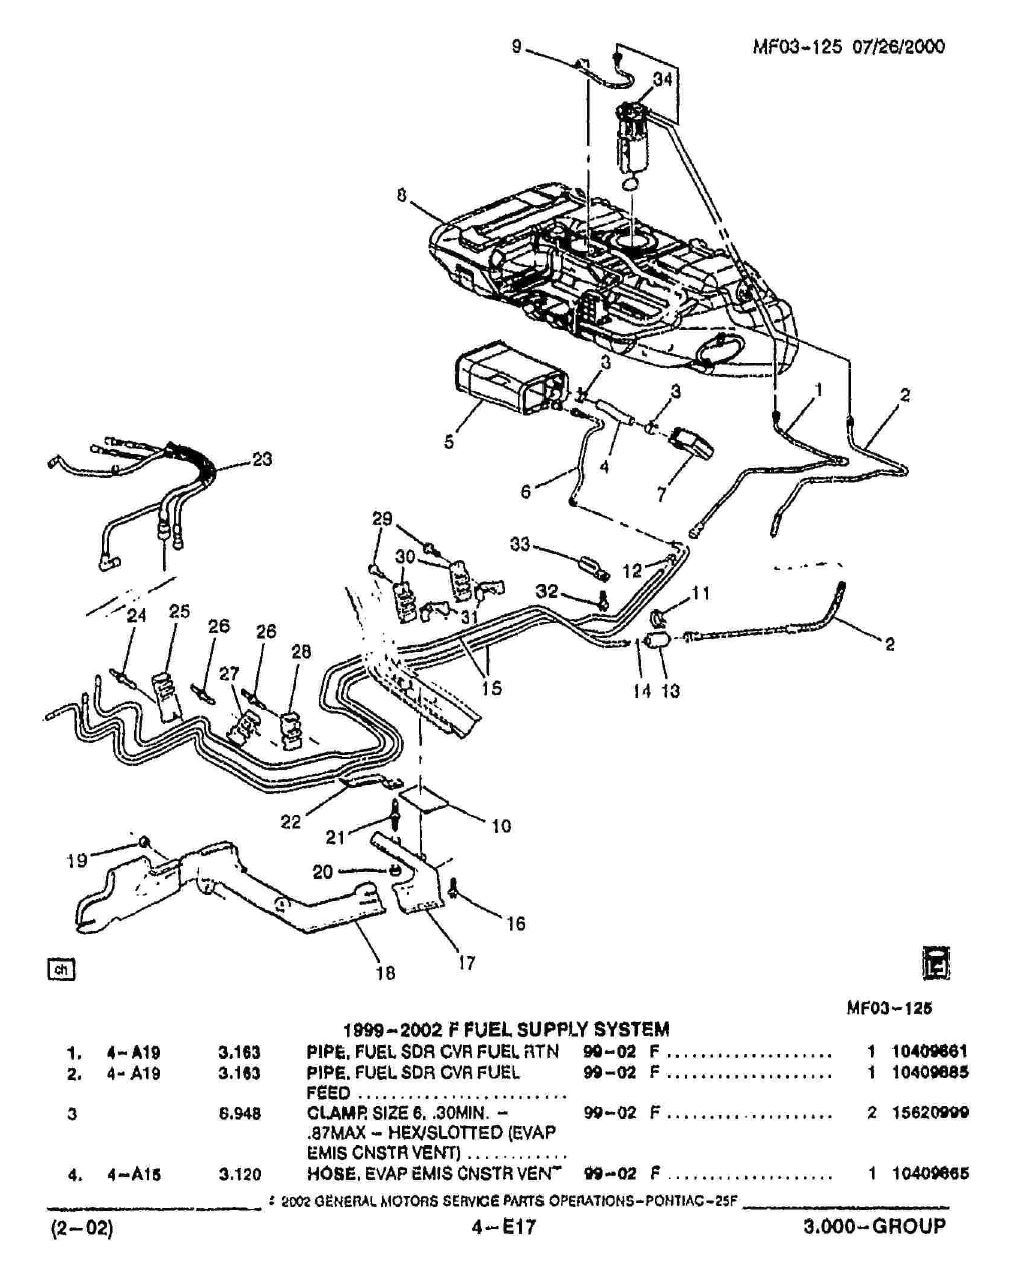 94 Camaro Wiring Diagram. Diagrams. Wiring Diagram Images